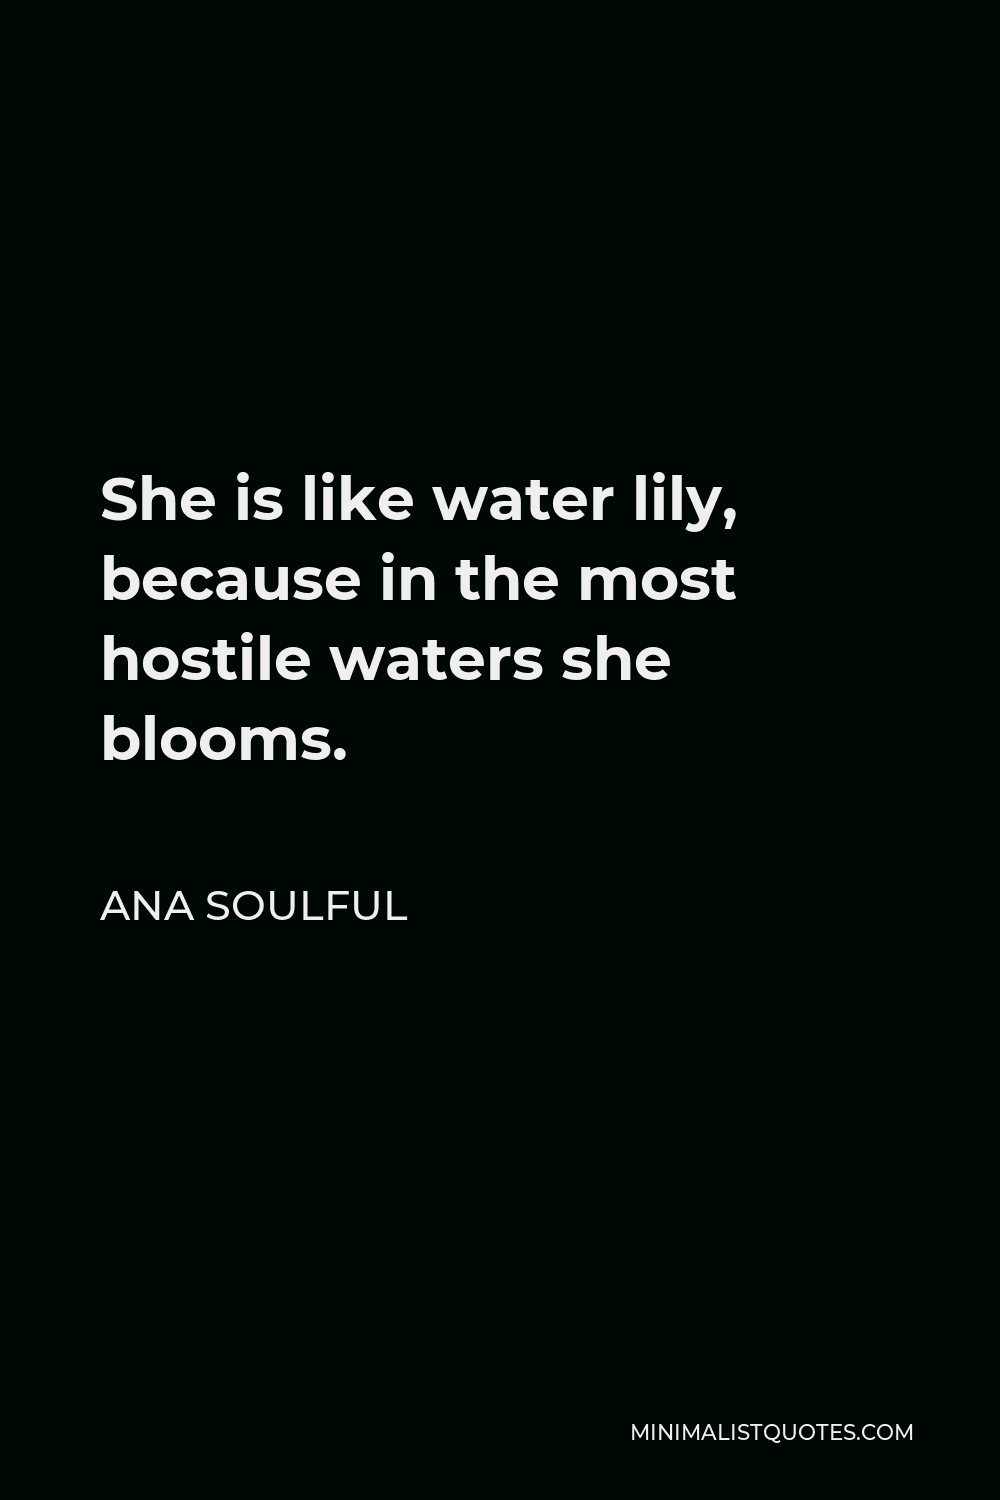 Ana Soulful Quote - She is like water lily, because in the most hostile waters she blooms.